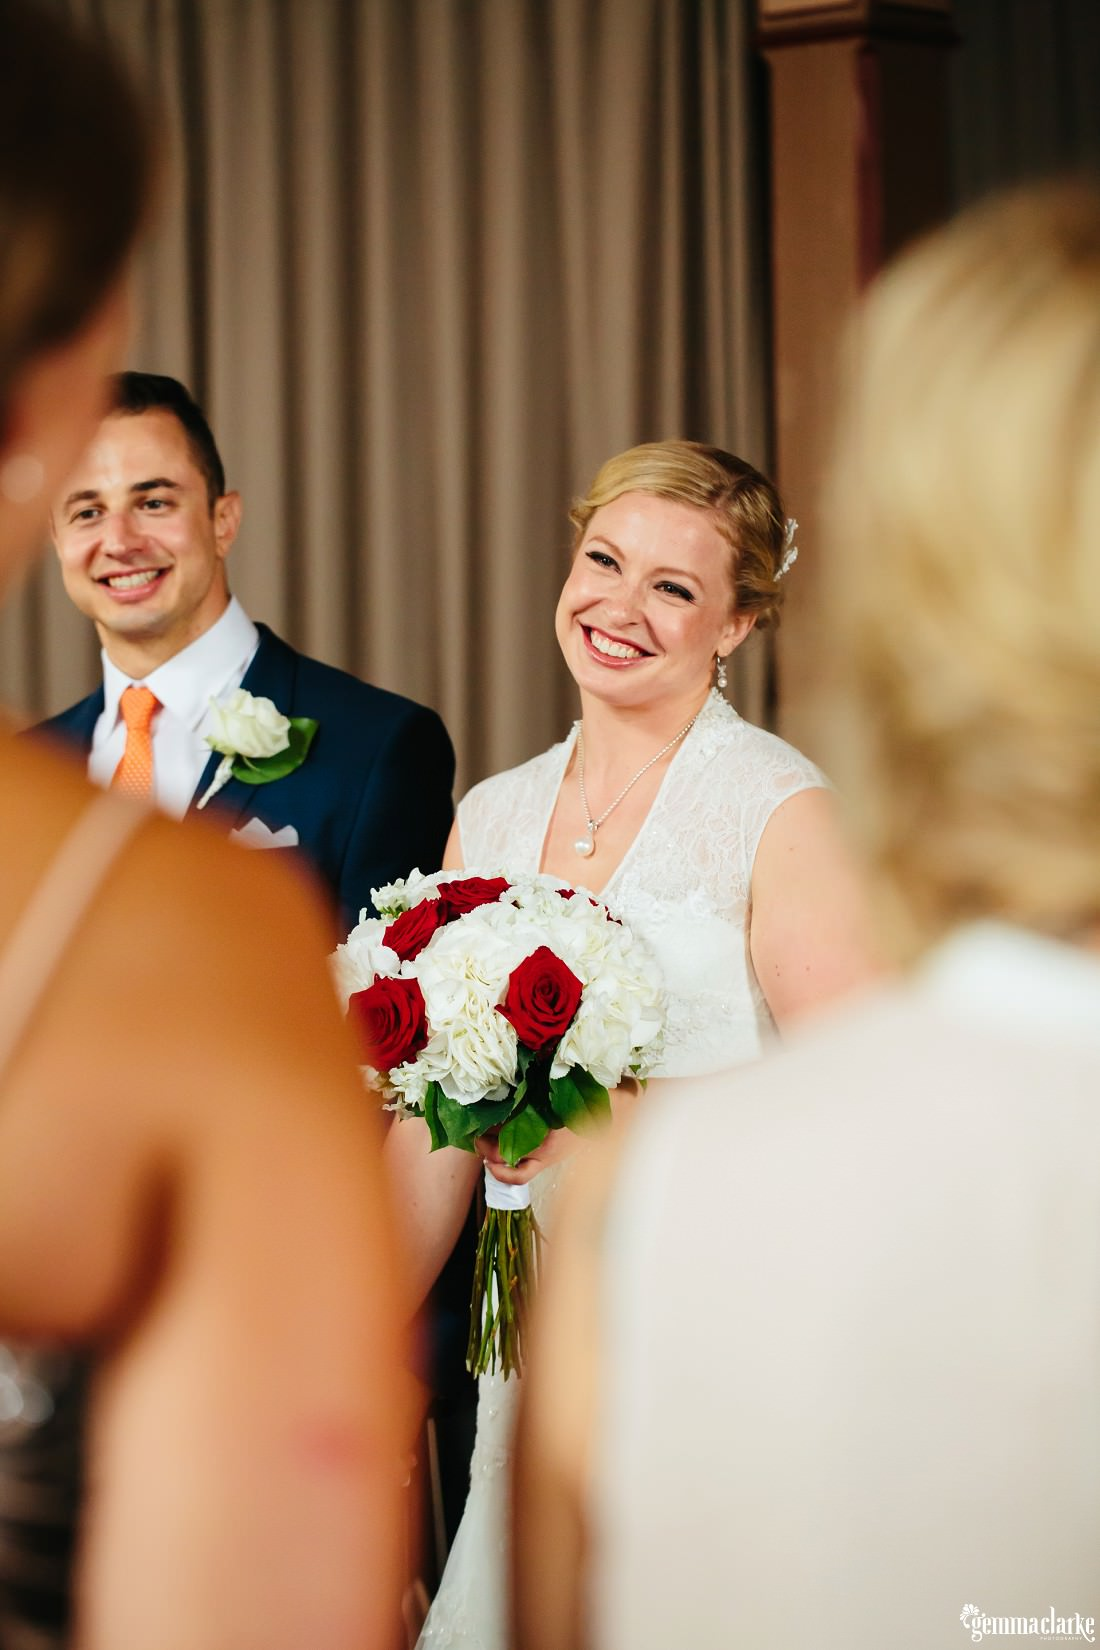 A smiling bride and groom at their wedding ceremony